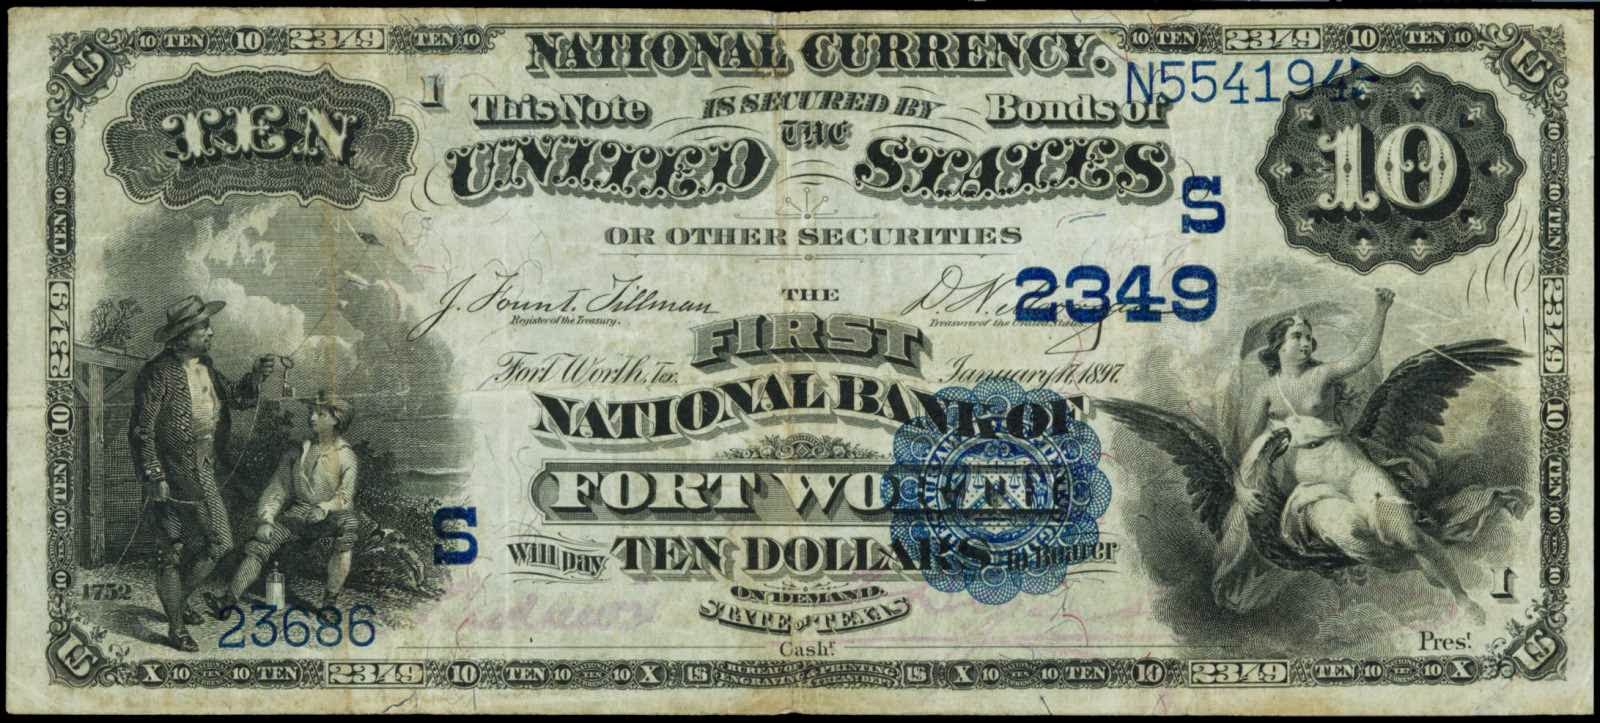 1882+Ten+Dollar+Date+Back+National+Curre